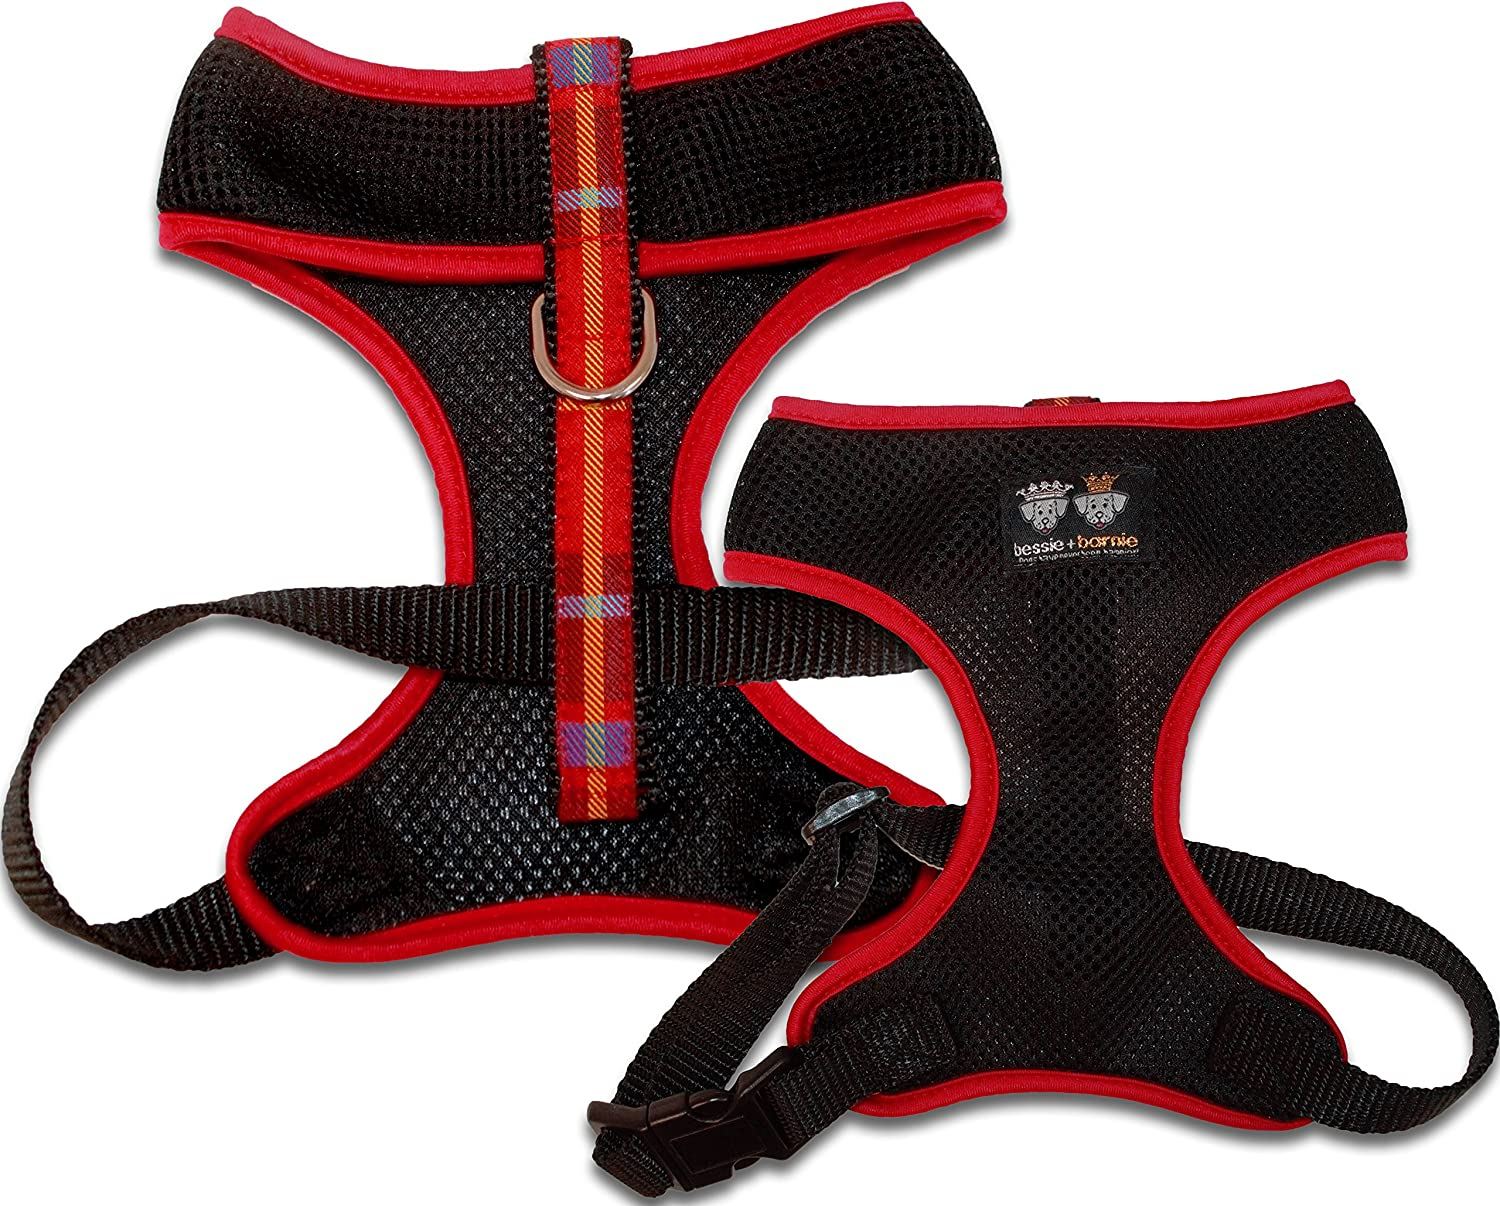 BESSIE AND BARNIE Air Comfort Harness for Pets, XSmall, Black Crimson Plaid Red